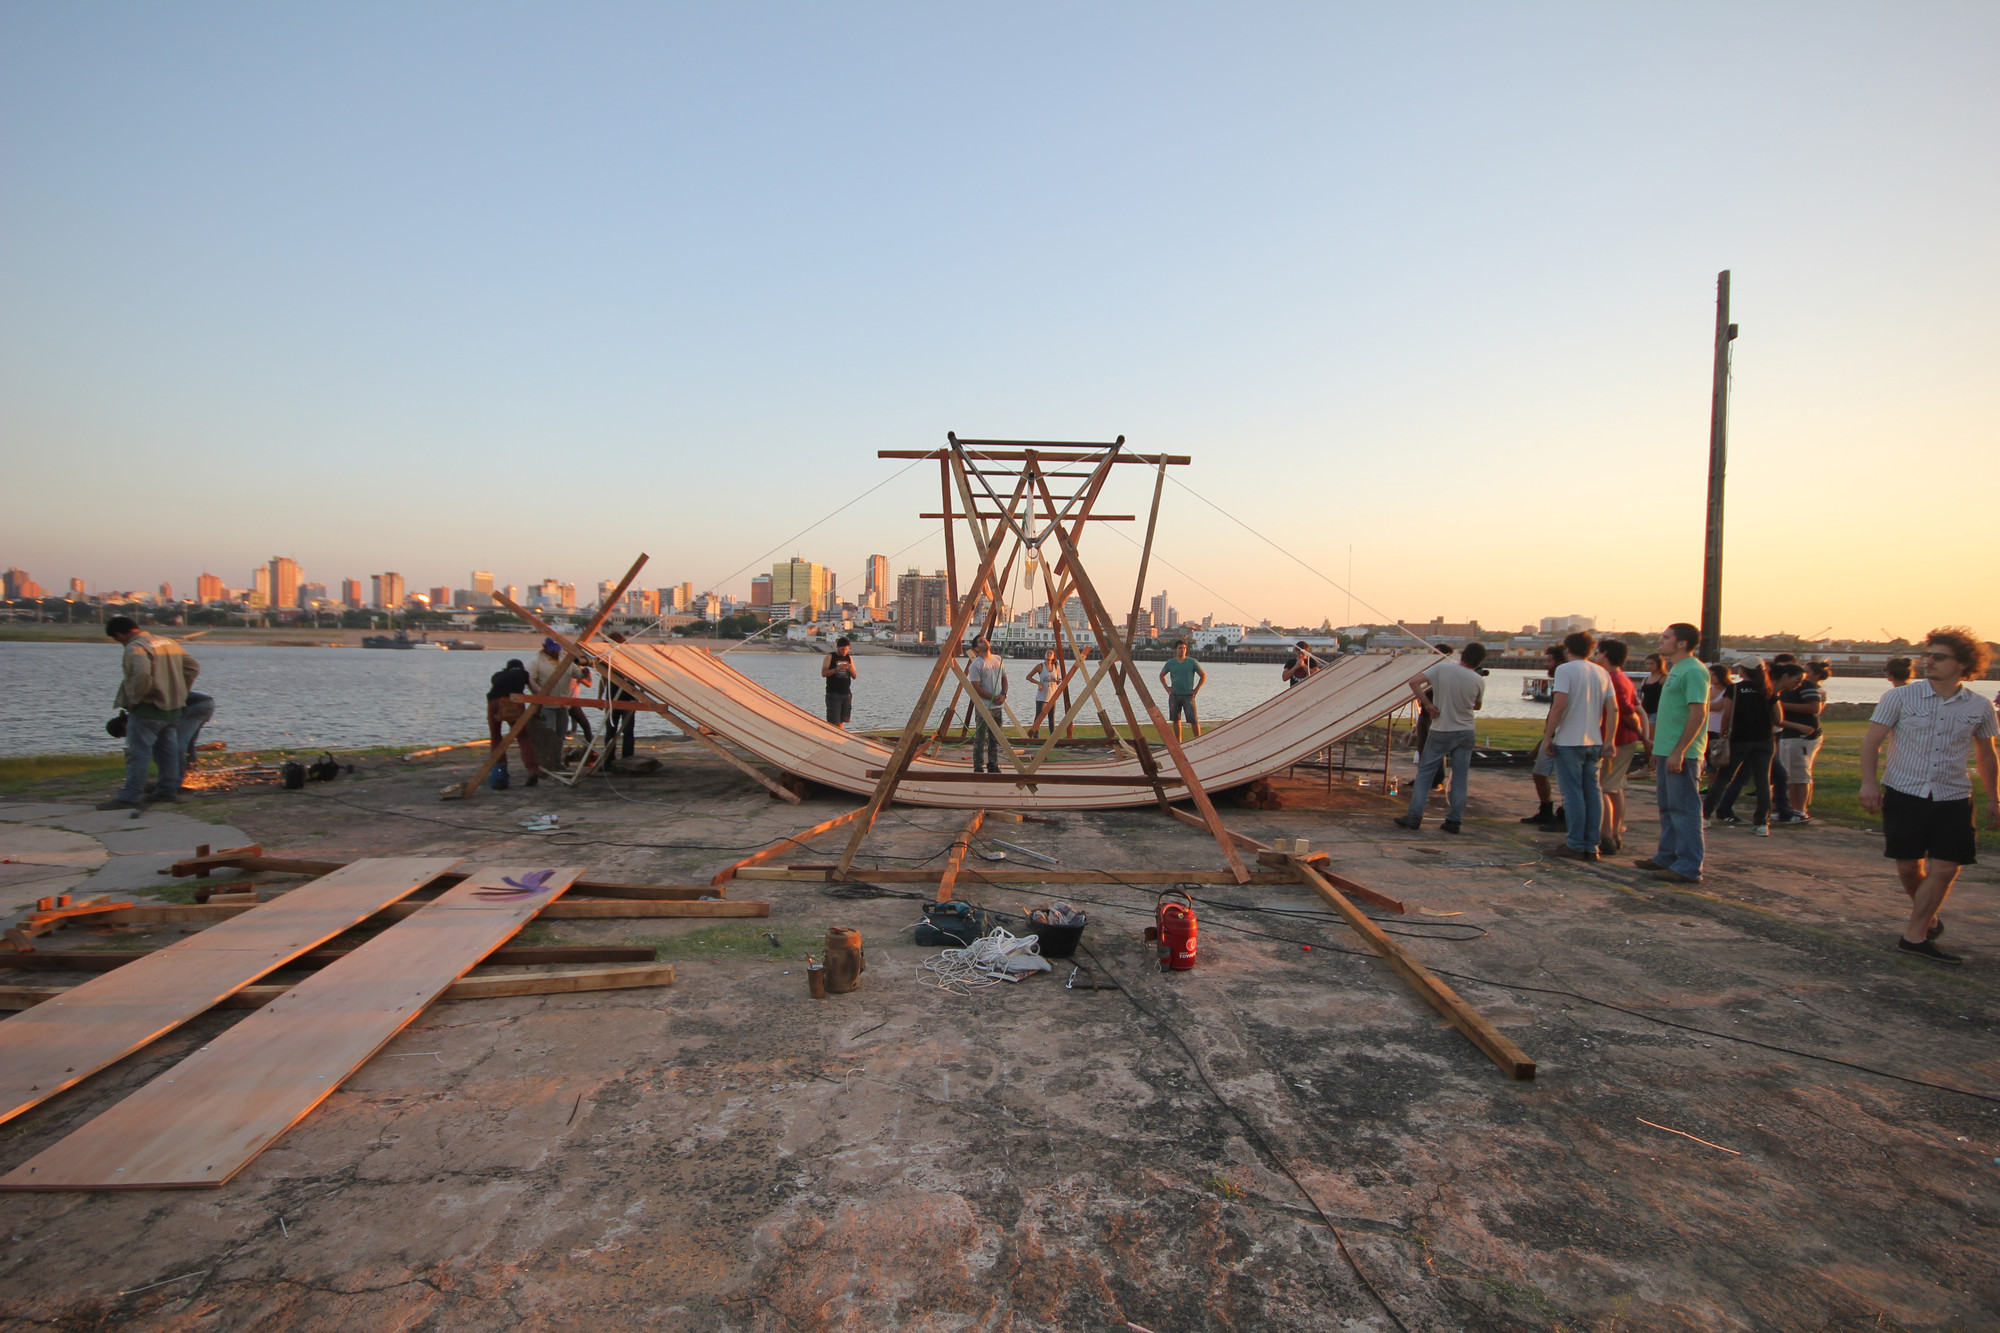 Venice Biennale 2014: Paraguay to Submit Tensile Water Structure, Courtesy of Javier Corvalan + Colectivo Aqua Alta